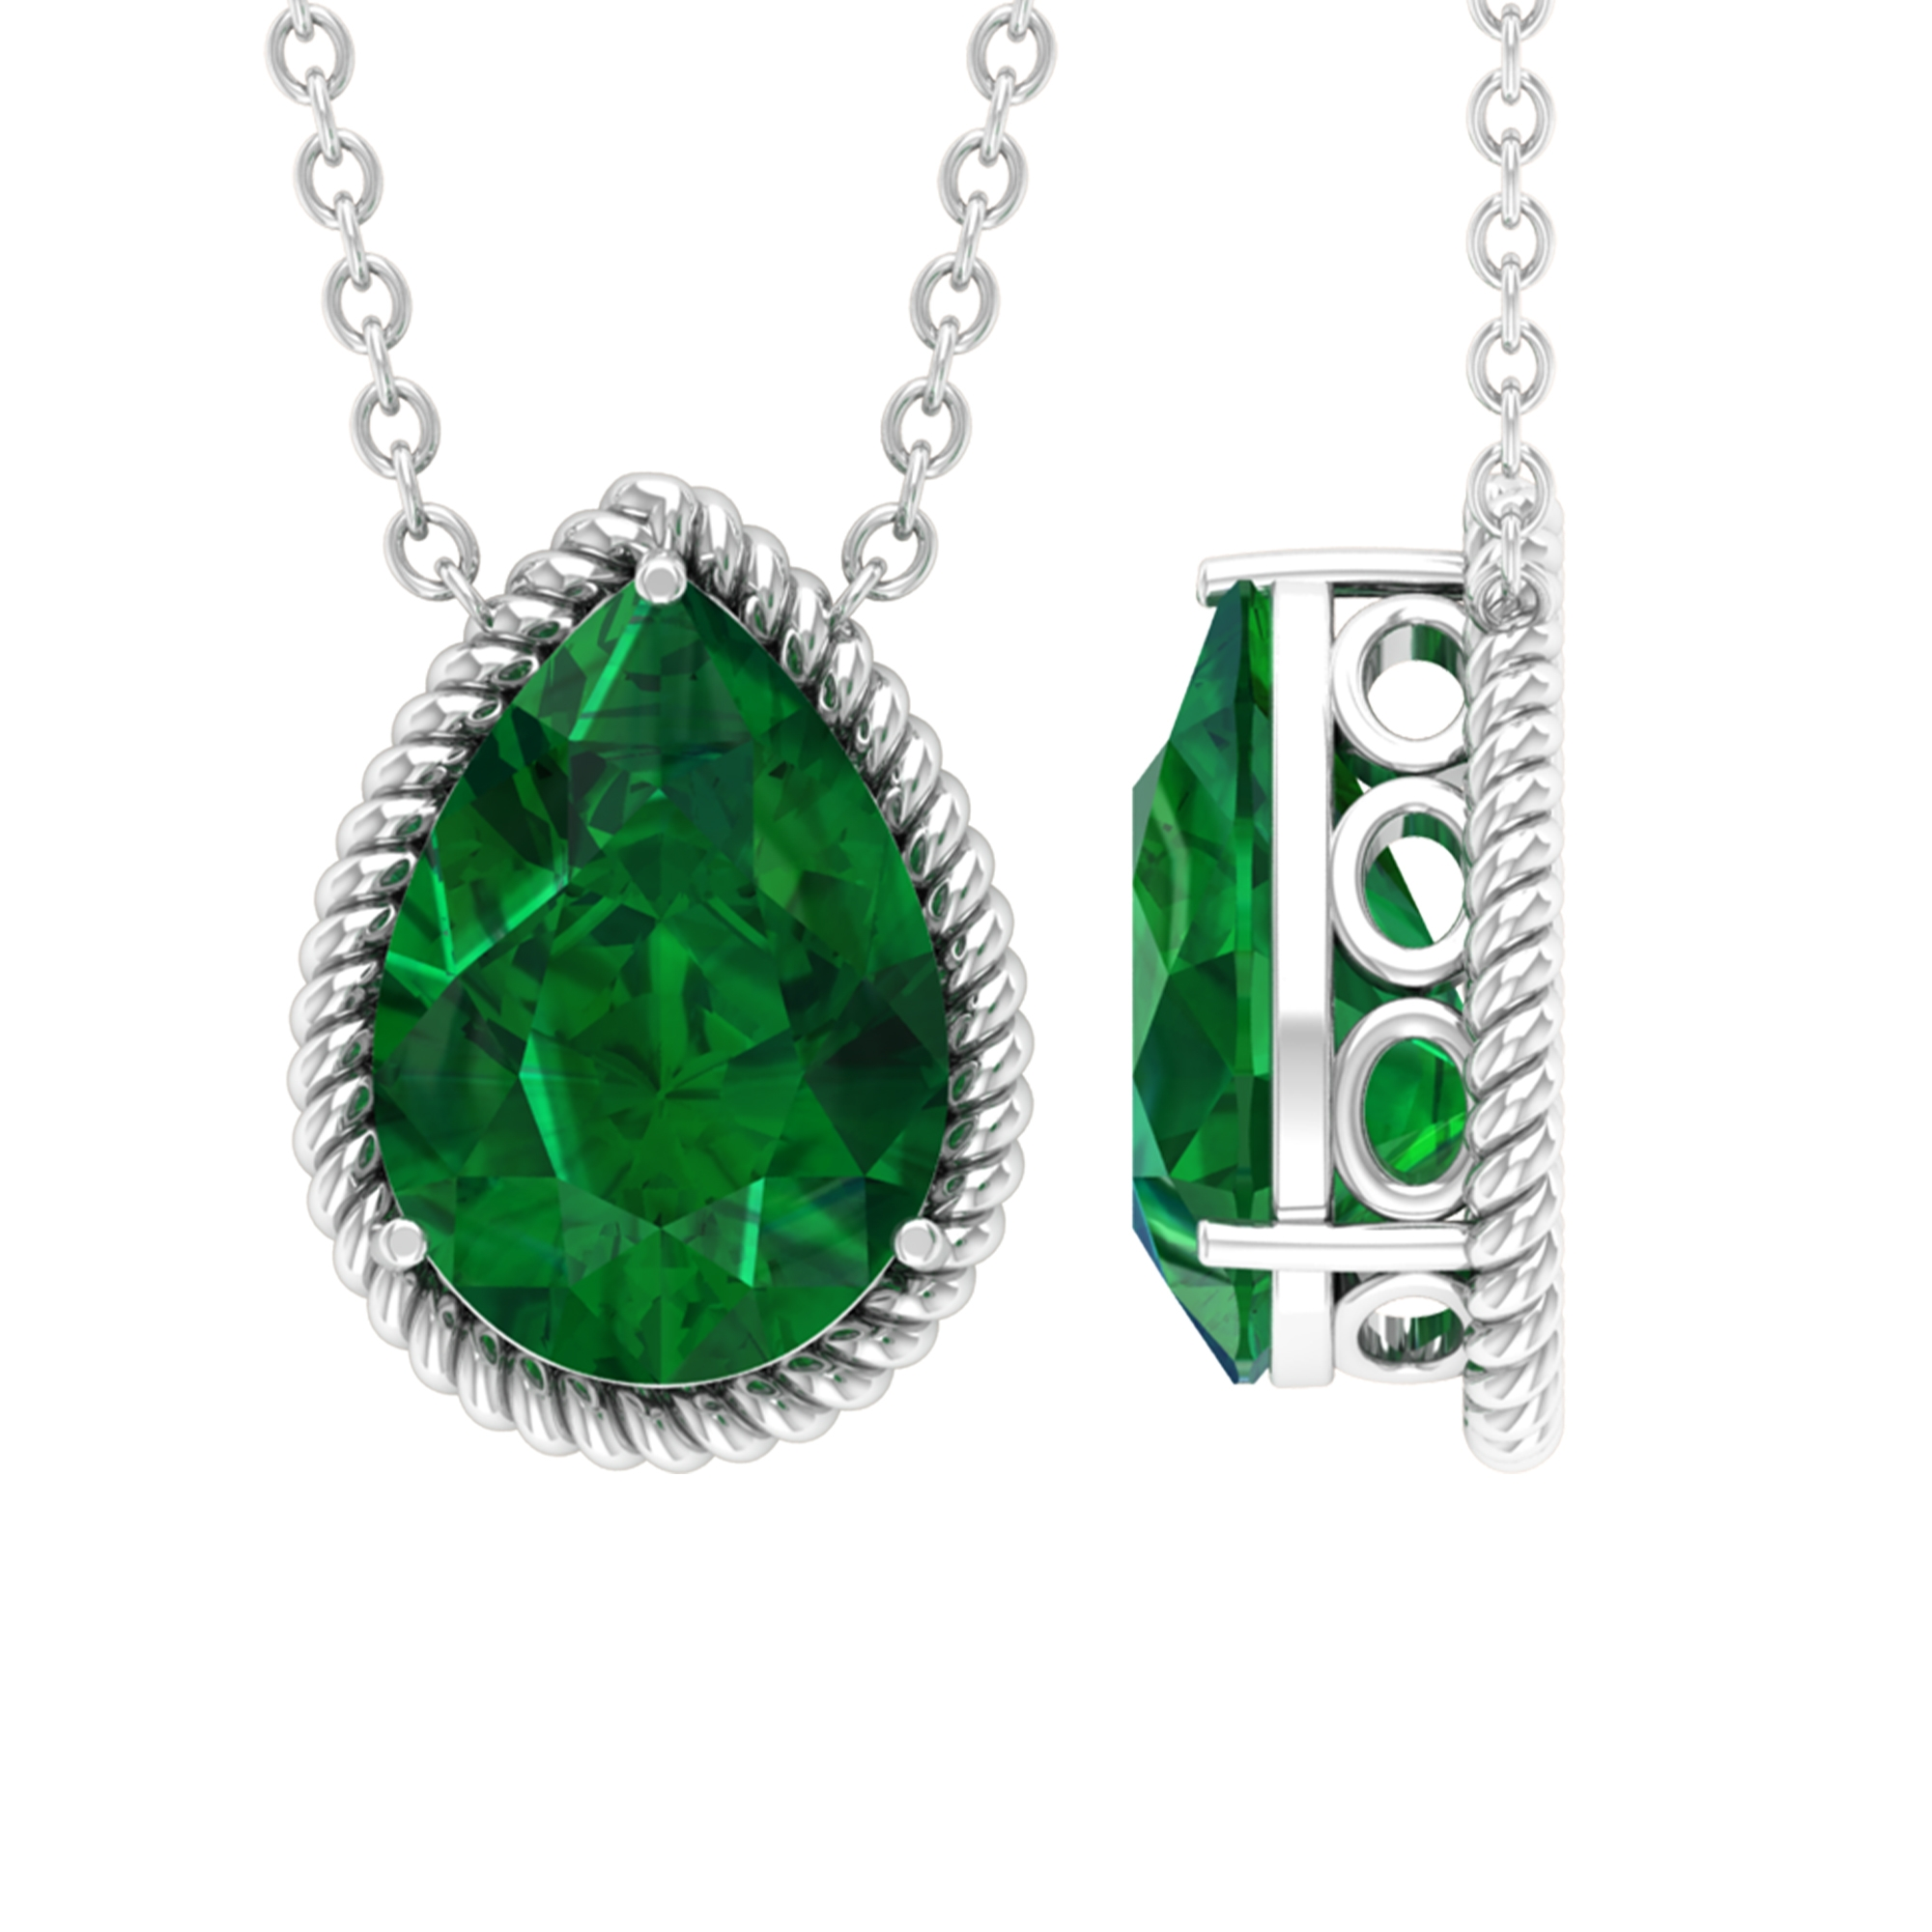 7X10 MM 3 Prong Set Pear Cut Emerald Solitaire Necklace with Rope Frame